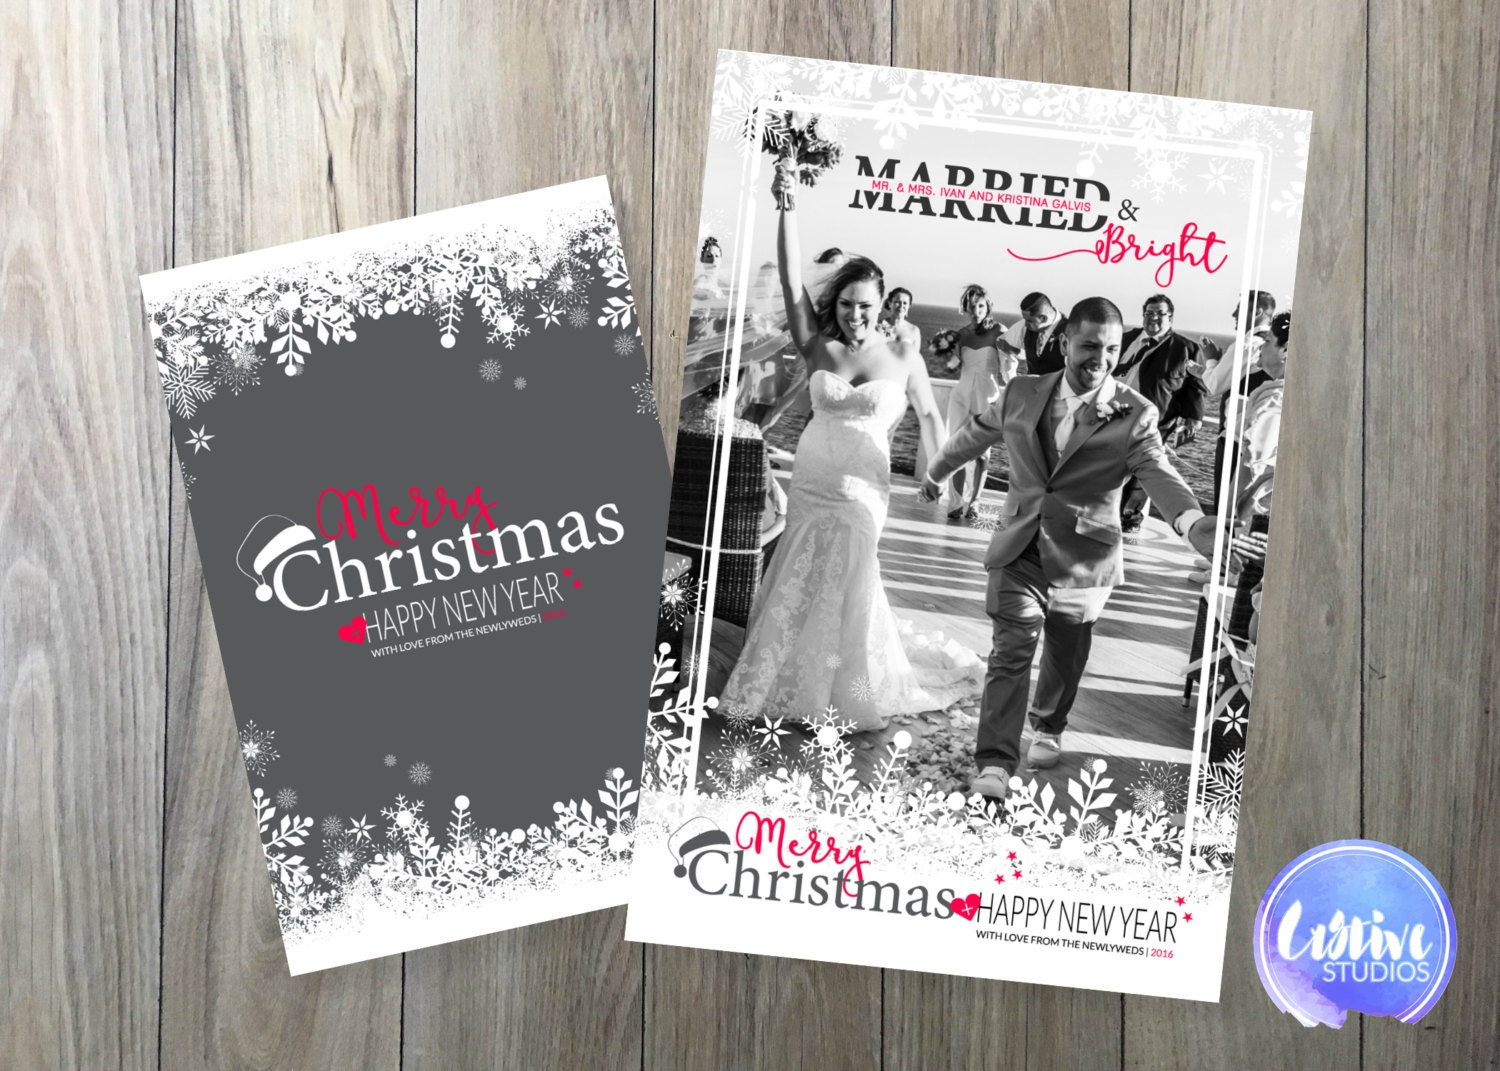 Married & Bright // Just Married Christmas Card // Photo | Etsy